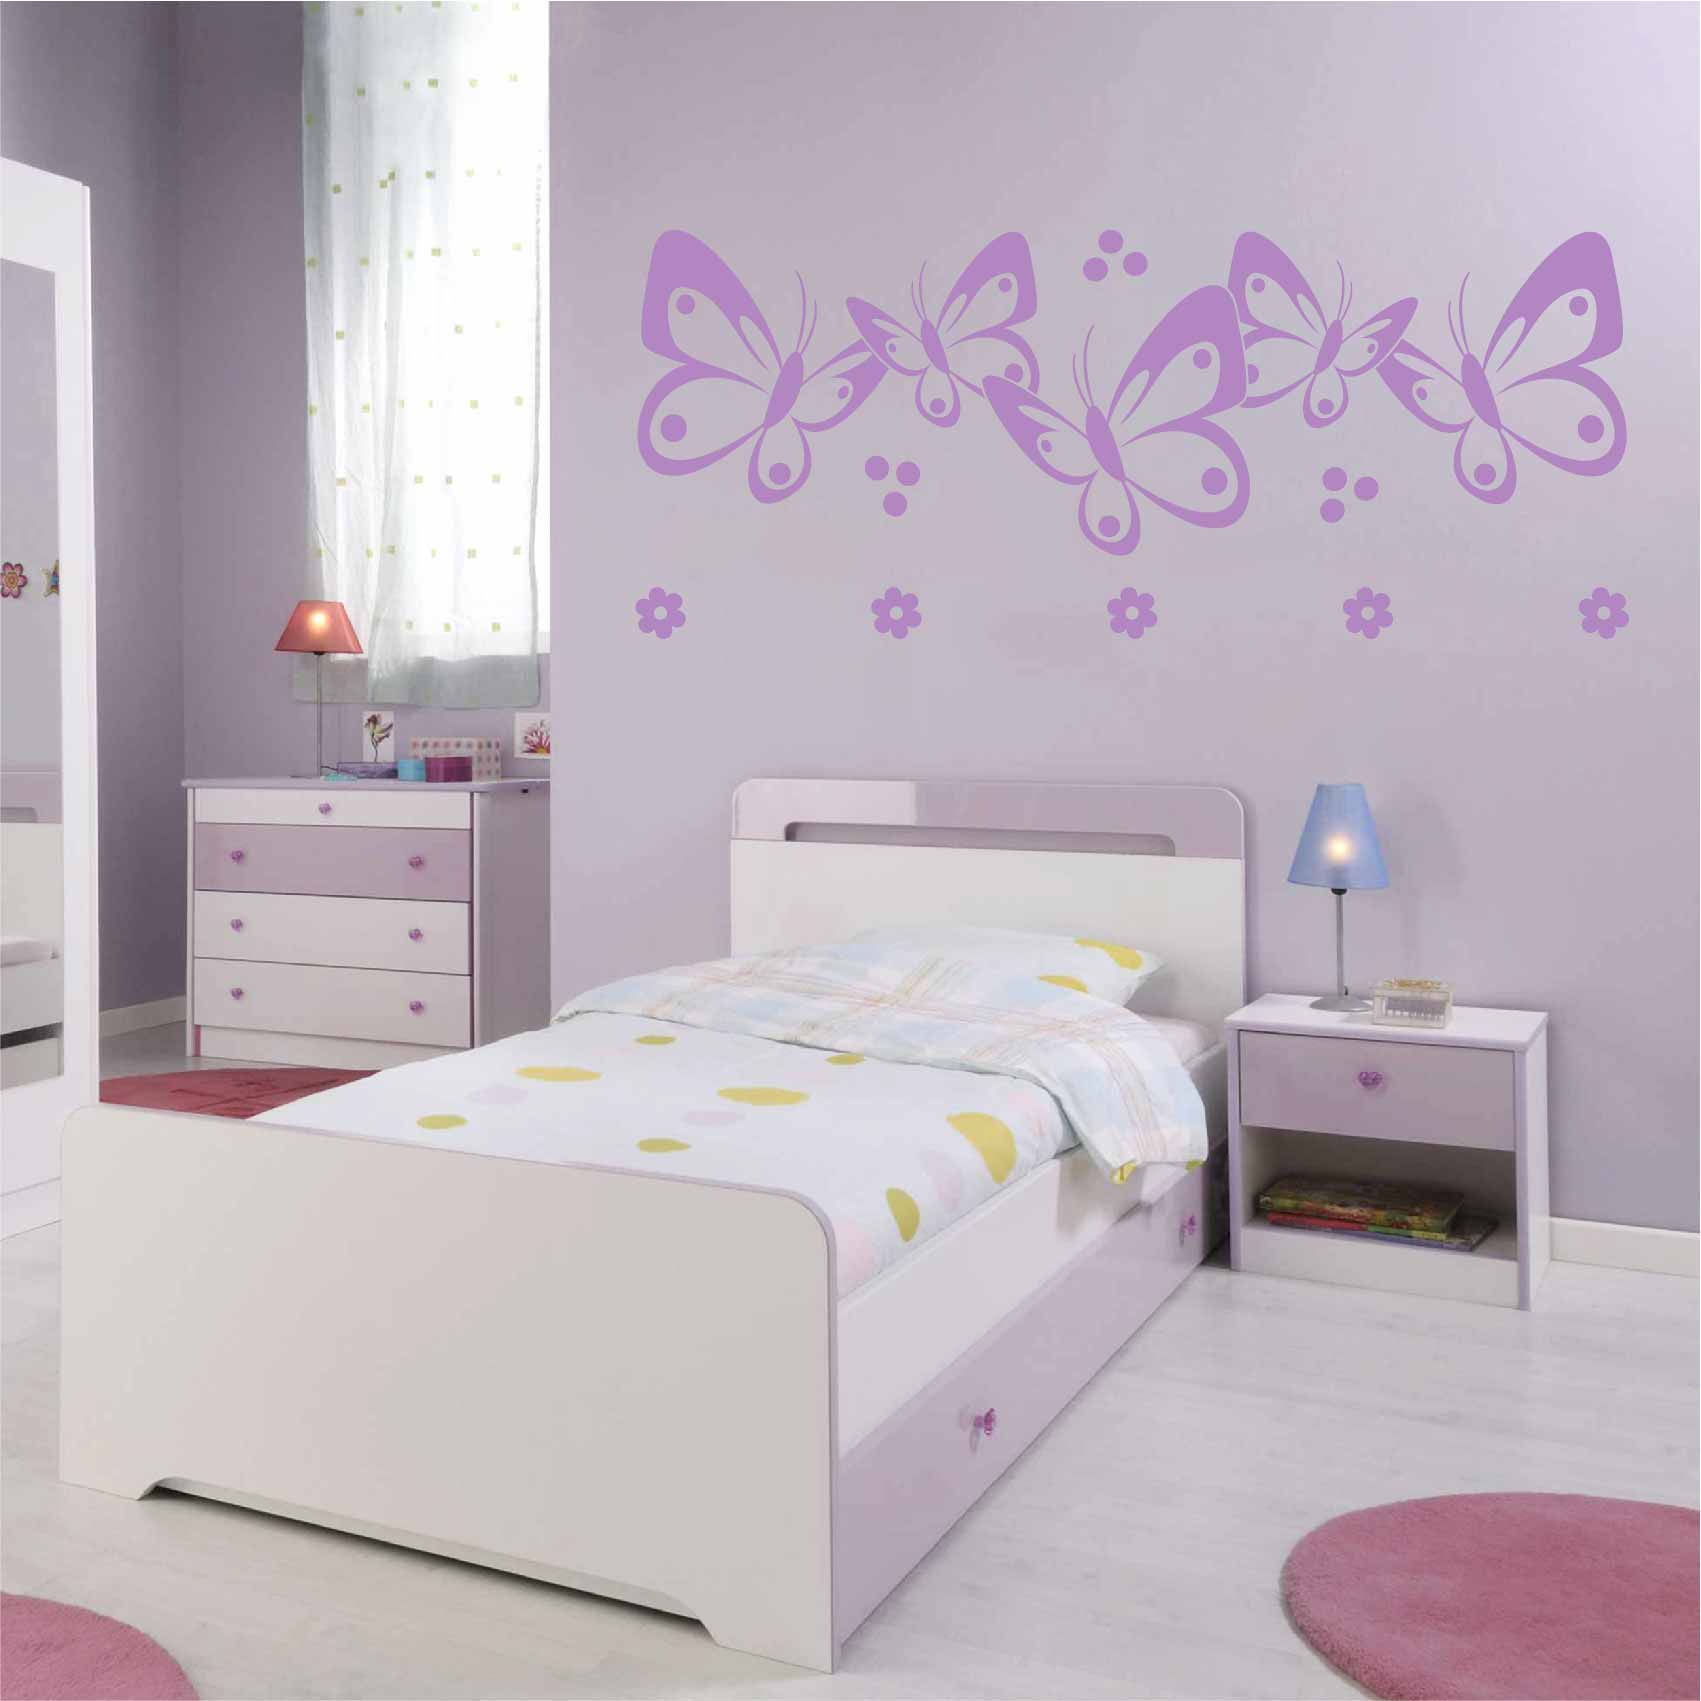 Stickers Papillon Chambre Fille Stickers Papillon Chambre Fille